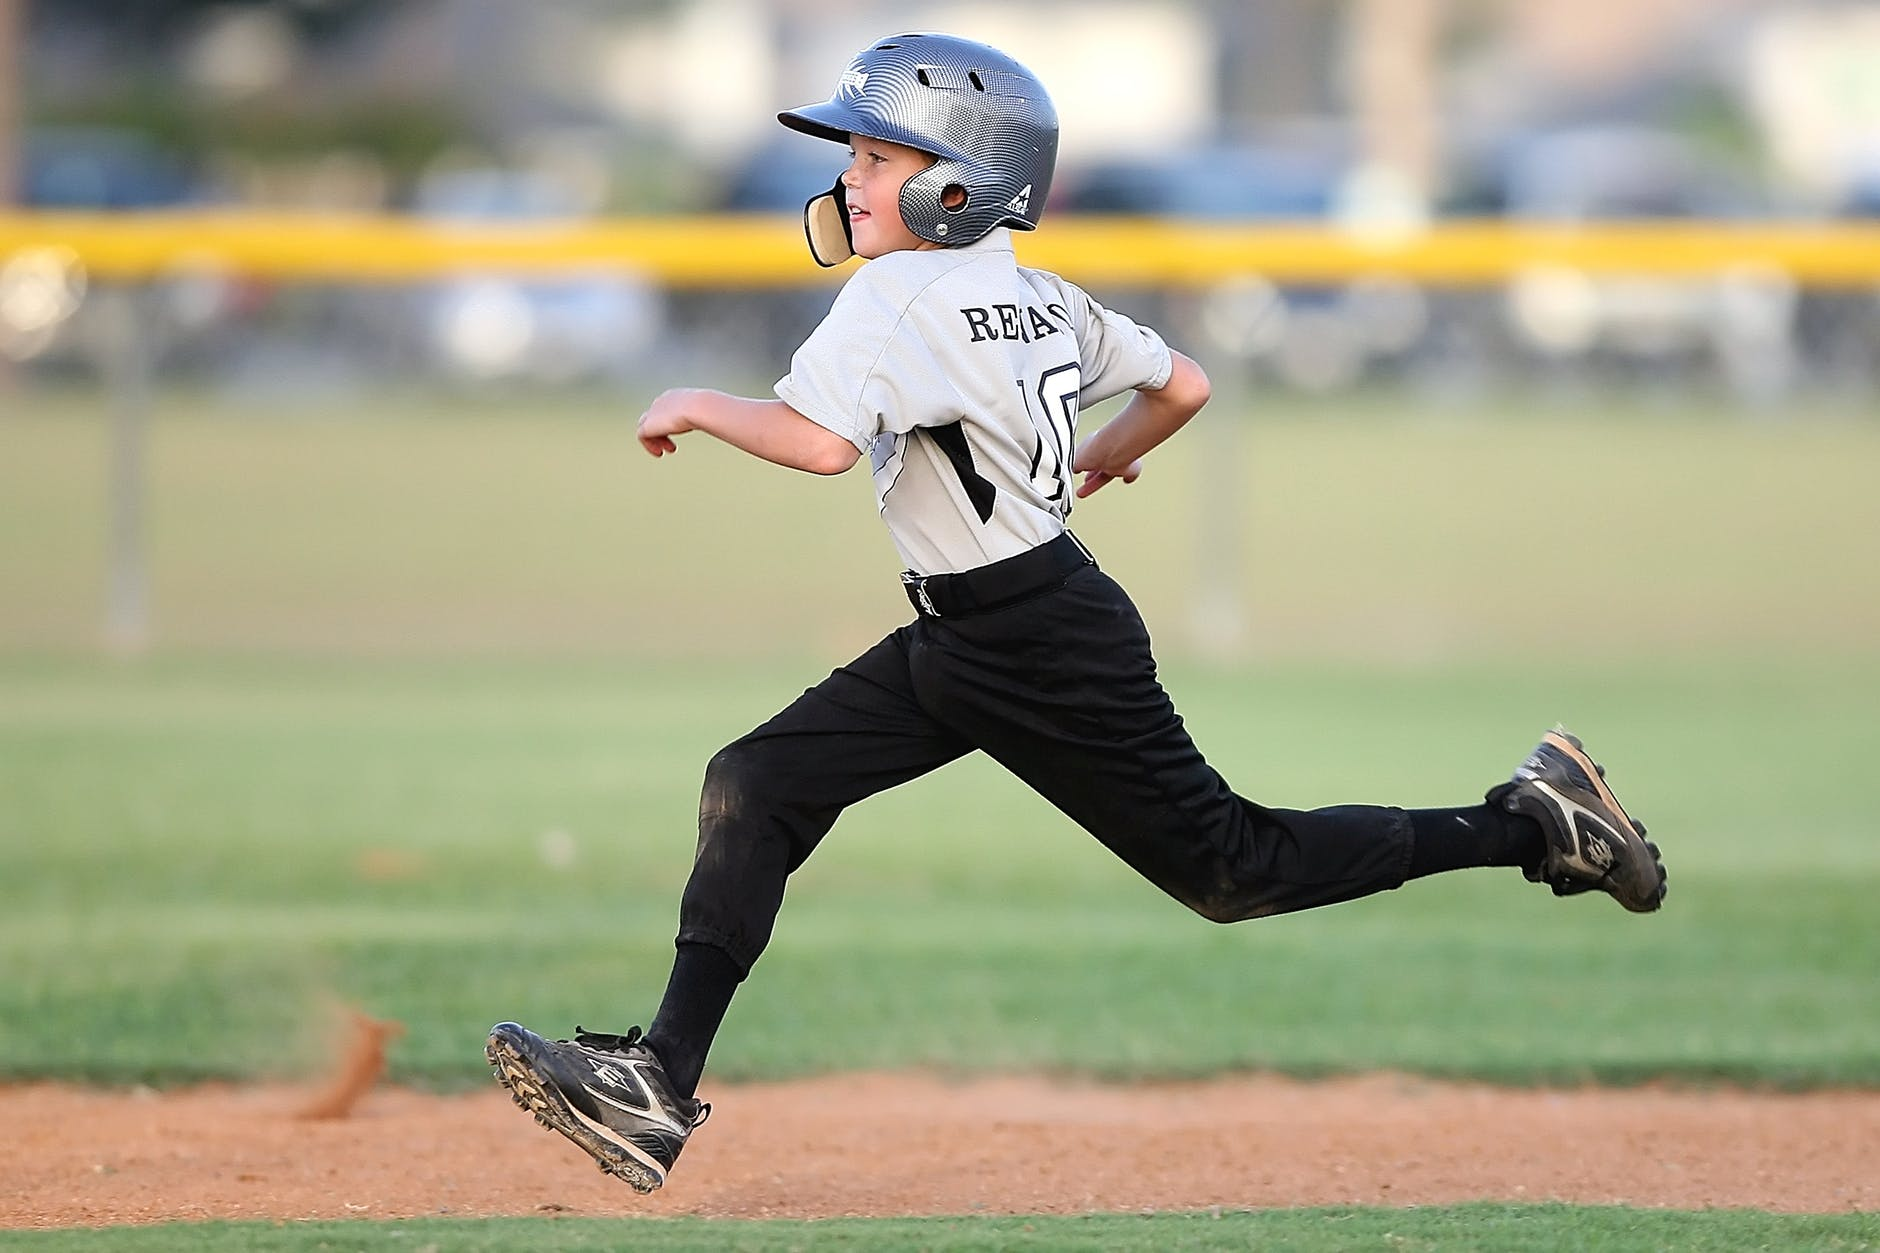 Registration Is Open For The All Star Baseball Camp The